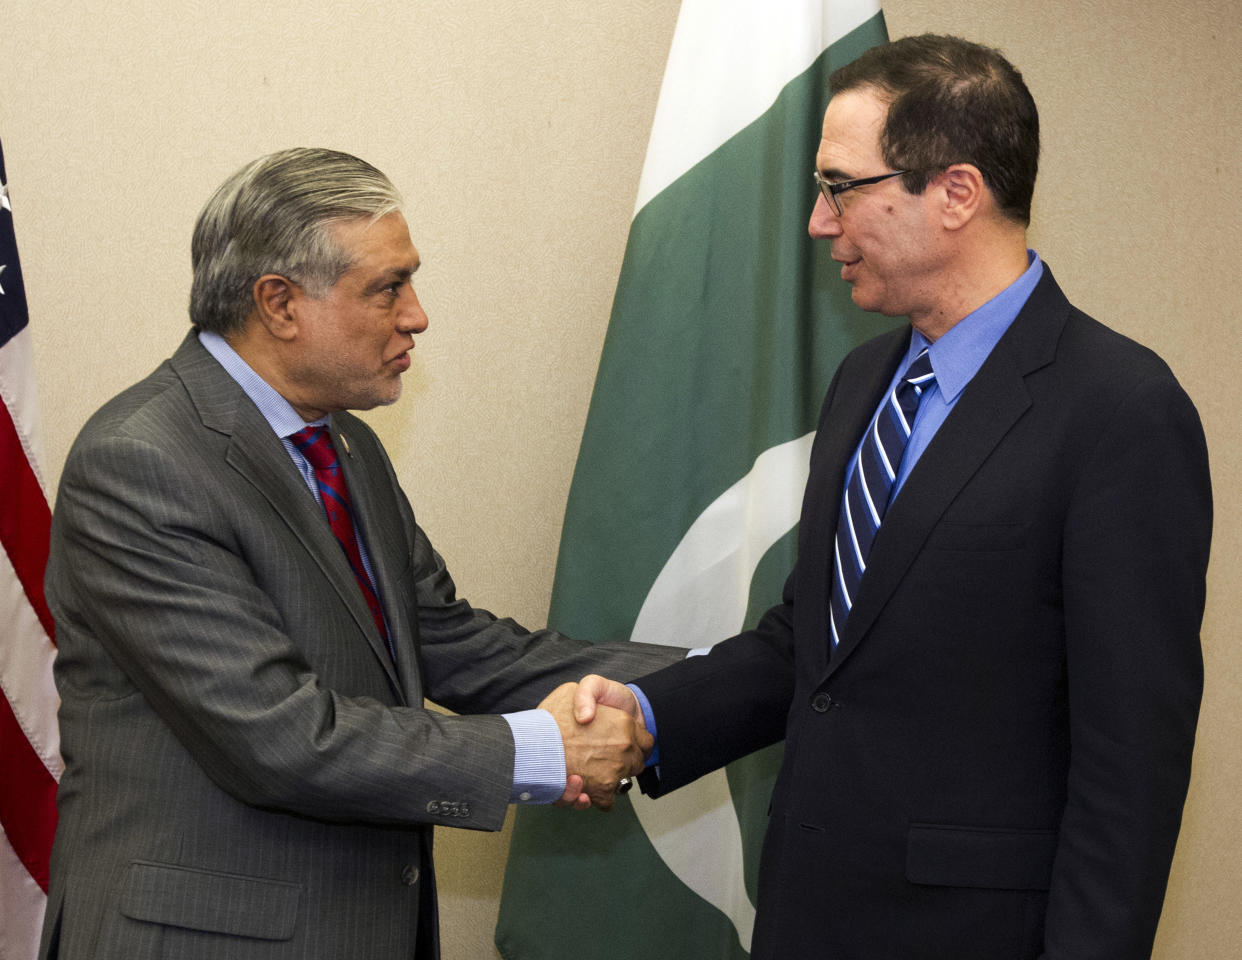 Treasury Secretary Steven Mnuchin, right, shake hands with Pakistan's Finance Minister Muhammad Ishaq Dar before a bilateral meeting during the World Bank/IMF Spring Meetings in Washington, Saturday, April 22, 2017. ( AP Photo/Jose Luis Magana)